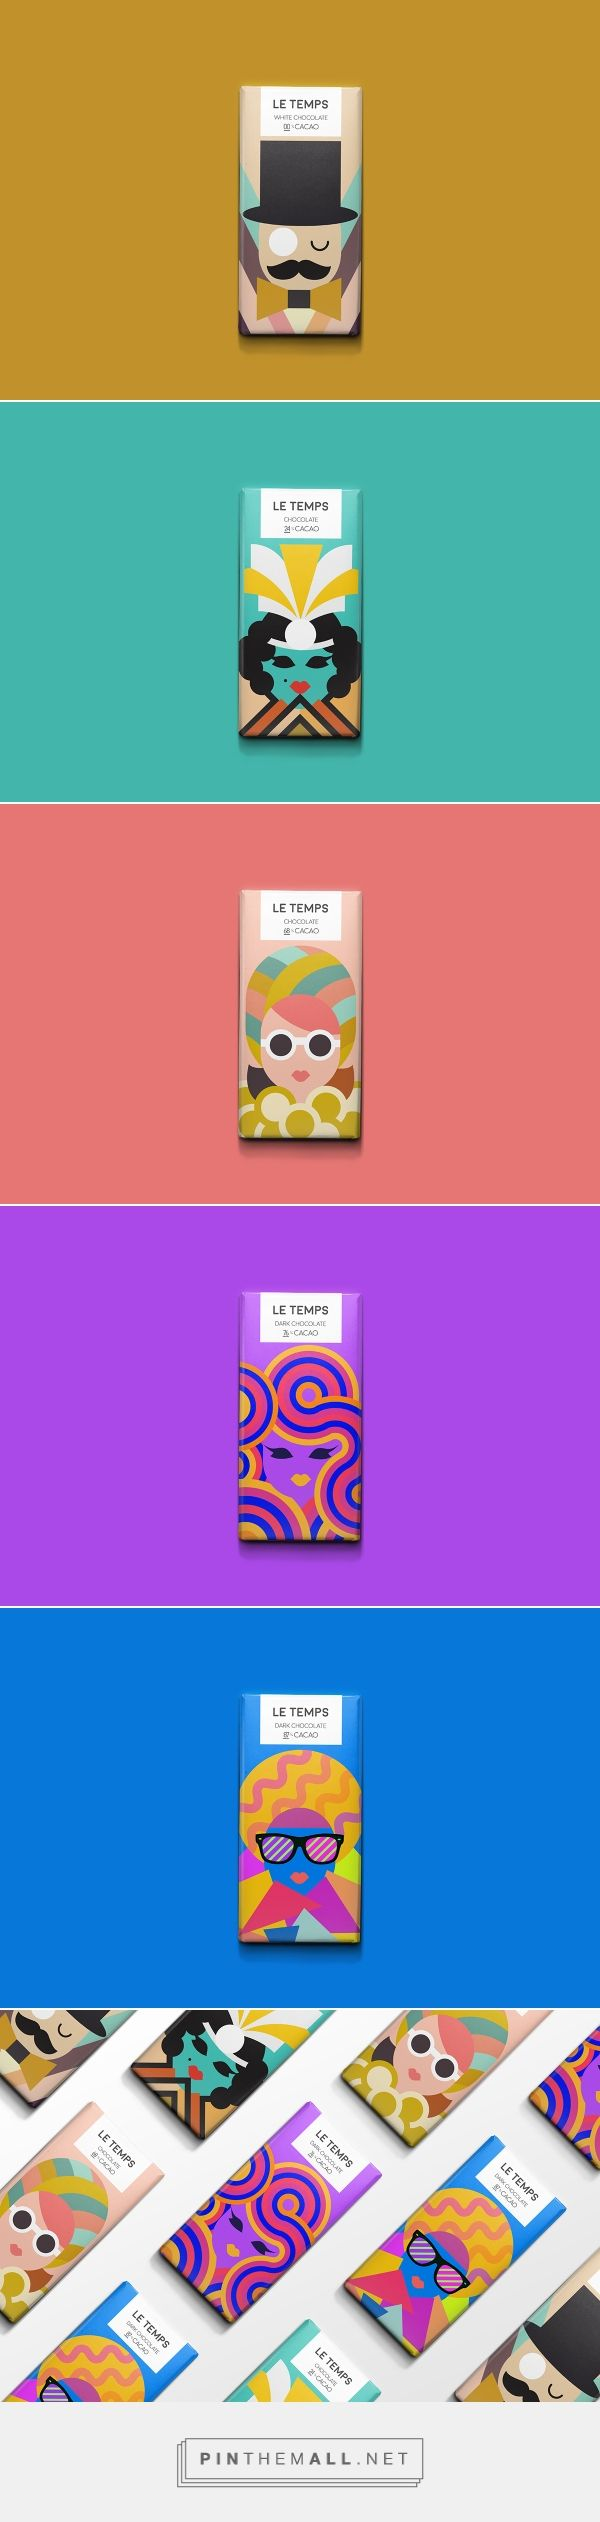 Le Temps Chocolate on Behance by Meetar Panesar, San Francisco, CA curated by Packaging Diva PD. Concept chocolate packaging for the smile file : )